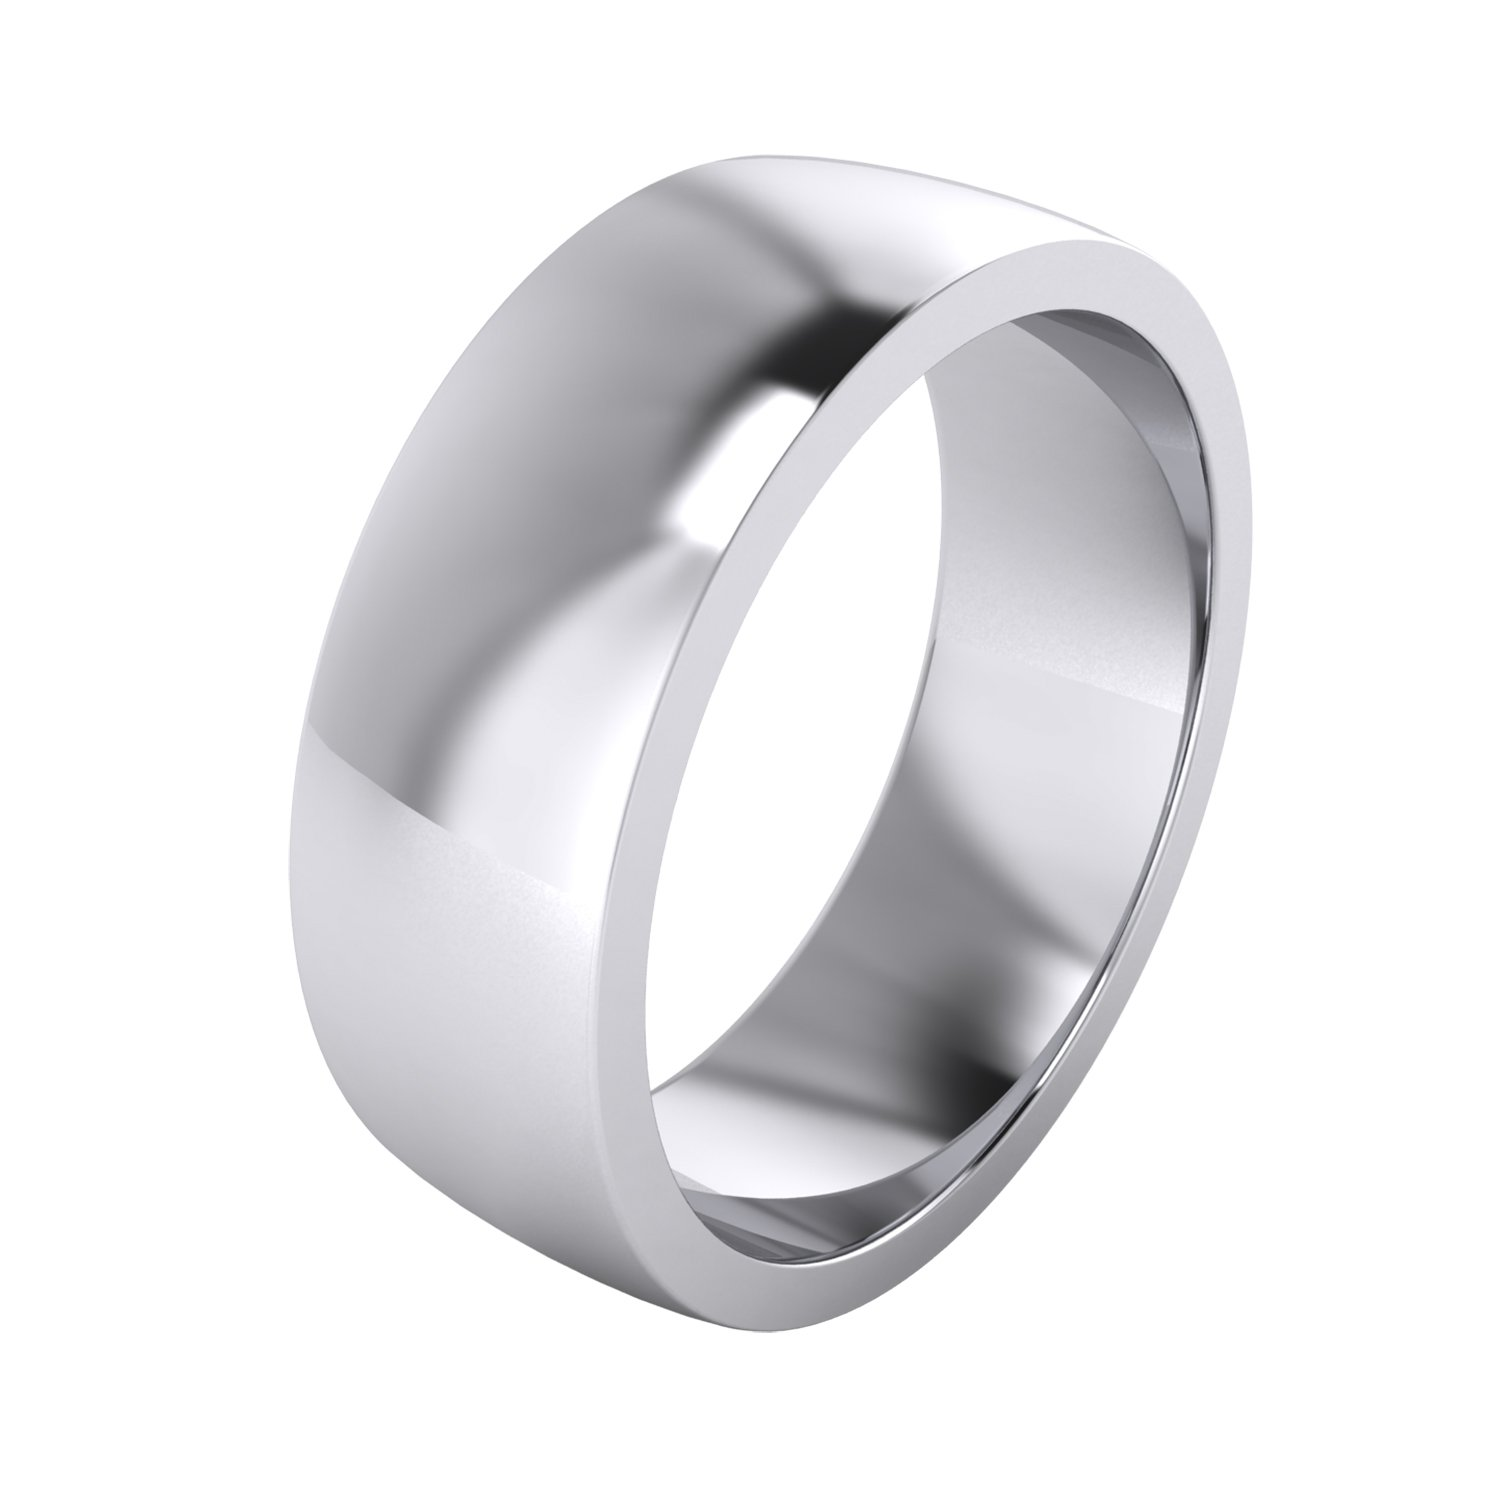 7d46204ca95e LANDA JEWEL 2 3 4 5 6 8 9mm Heavy Sterling Silver Comfort Fit Polished  Womens Wedding Ring Plain Band  Amazon.co.uk  Jewellery